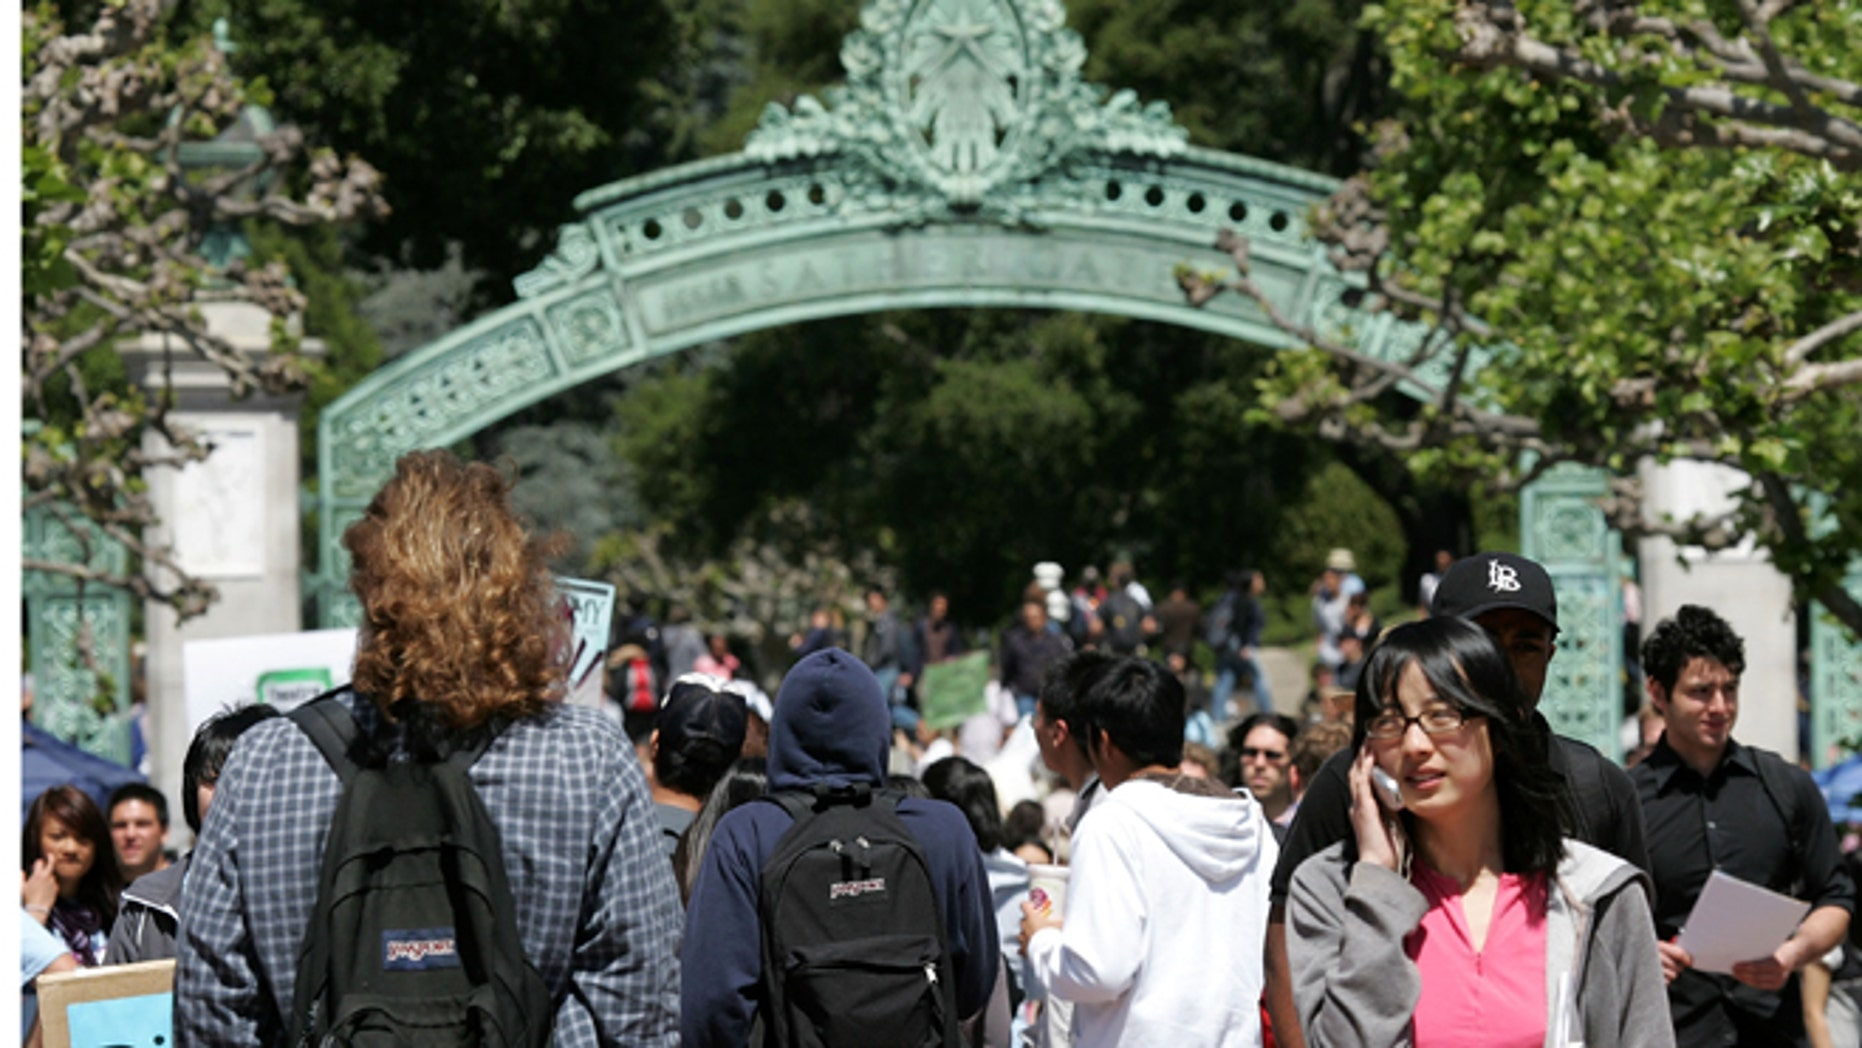 BERKELEY, CA - APRIL 17:  UC Berkeley students walk through Sather Gate on the UC Berkeley campus April 17, 2007 in Berkeley, California.  Robert Dynes, President of the University of California, said the University of California campuses across the state will reevaluate security and safety policies in the wake of the shooting massacre at Virginia Tech that left 33 people dead, including the gunman, 23 year-old student Cho Seung-Hui.  (Photo by Justin Sullivan/Getty Images)